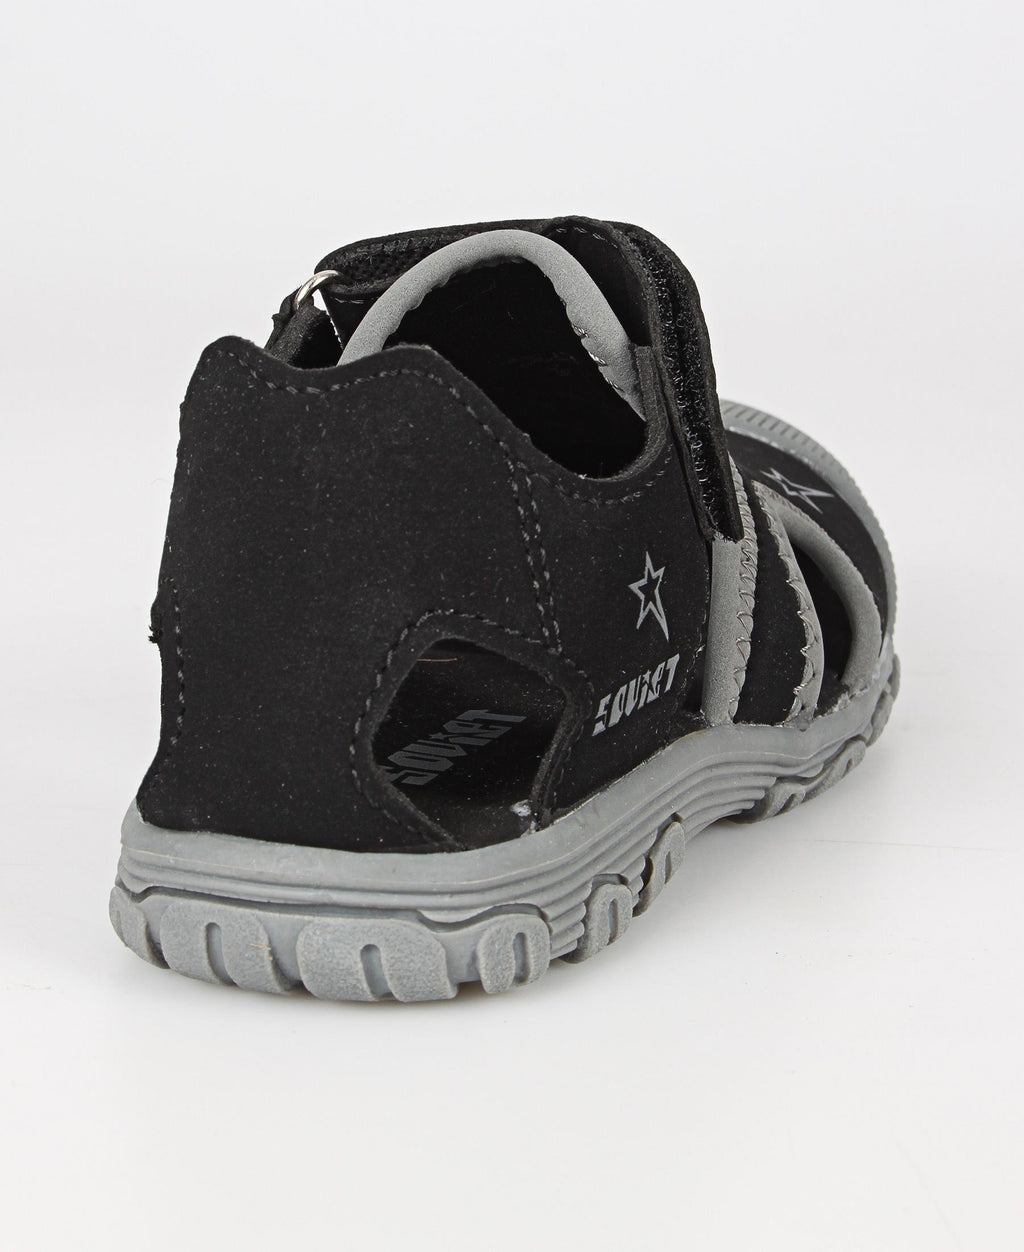 Kids Tate Sandals - Black